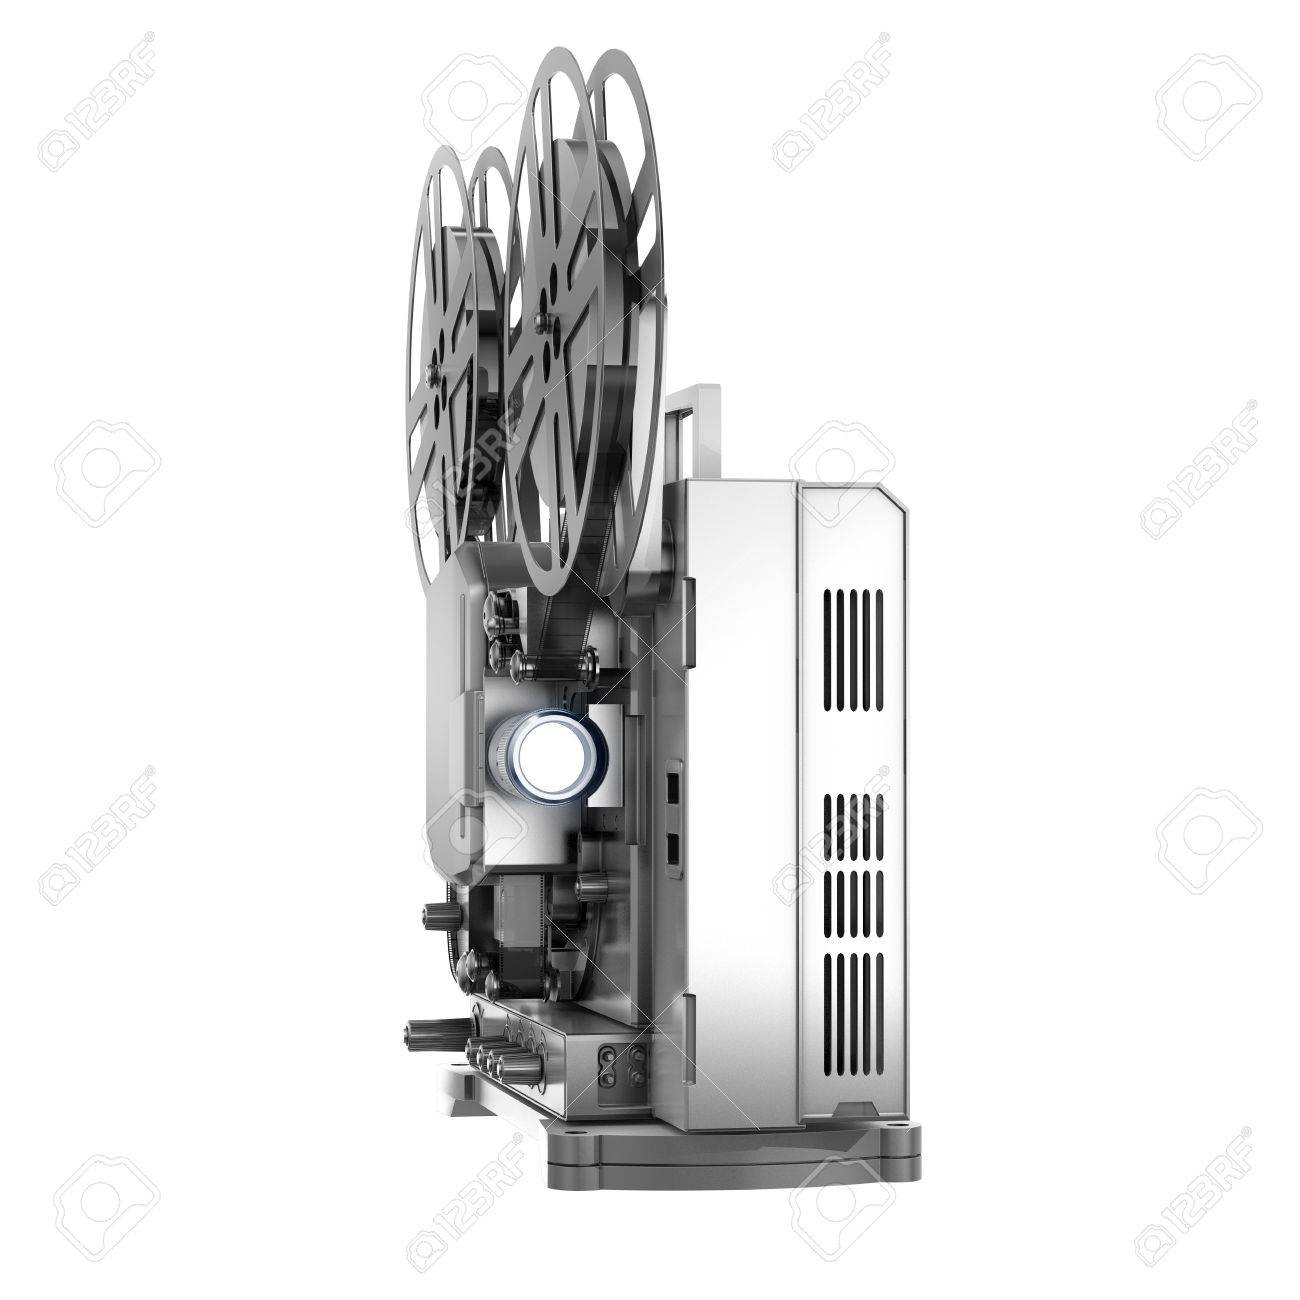 Old Cinema Projector Vintage Movie Or Video Concept 3d Rendering Isolated Stock Photo